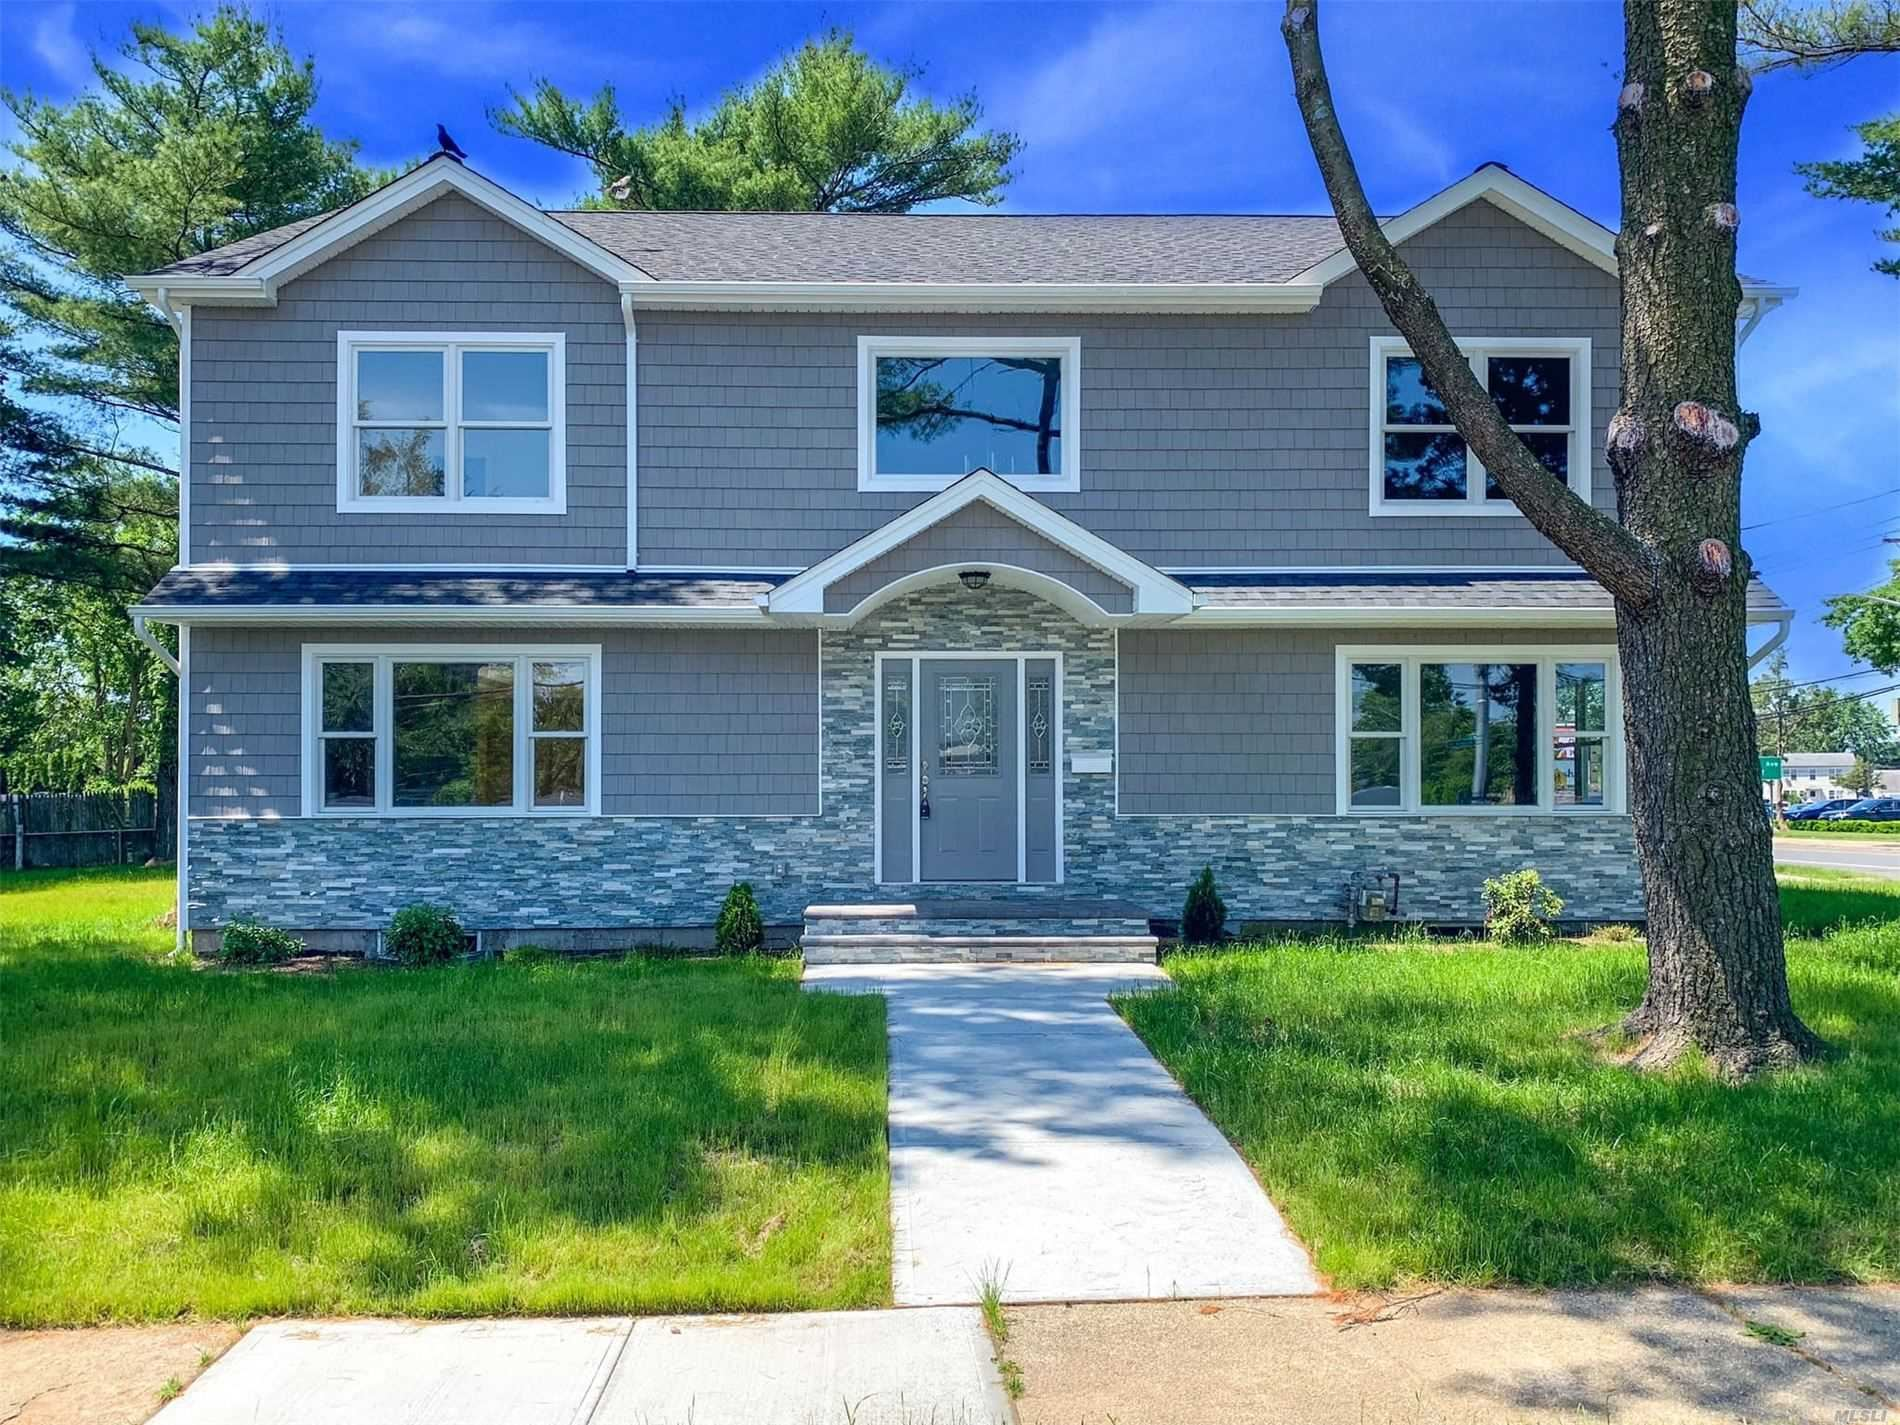 1956 Front Street, East Meadow, NY 11554 - MLS#: 3221760